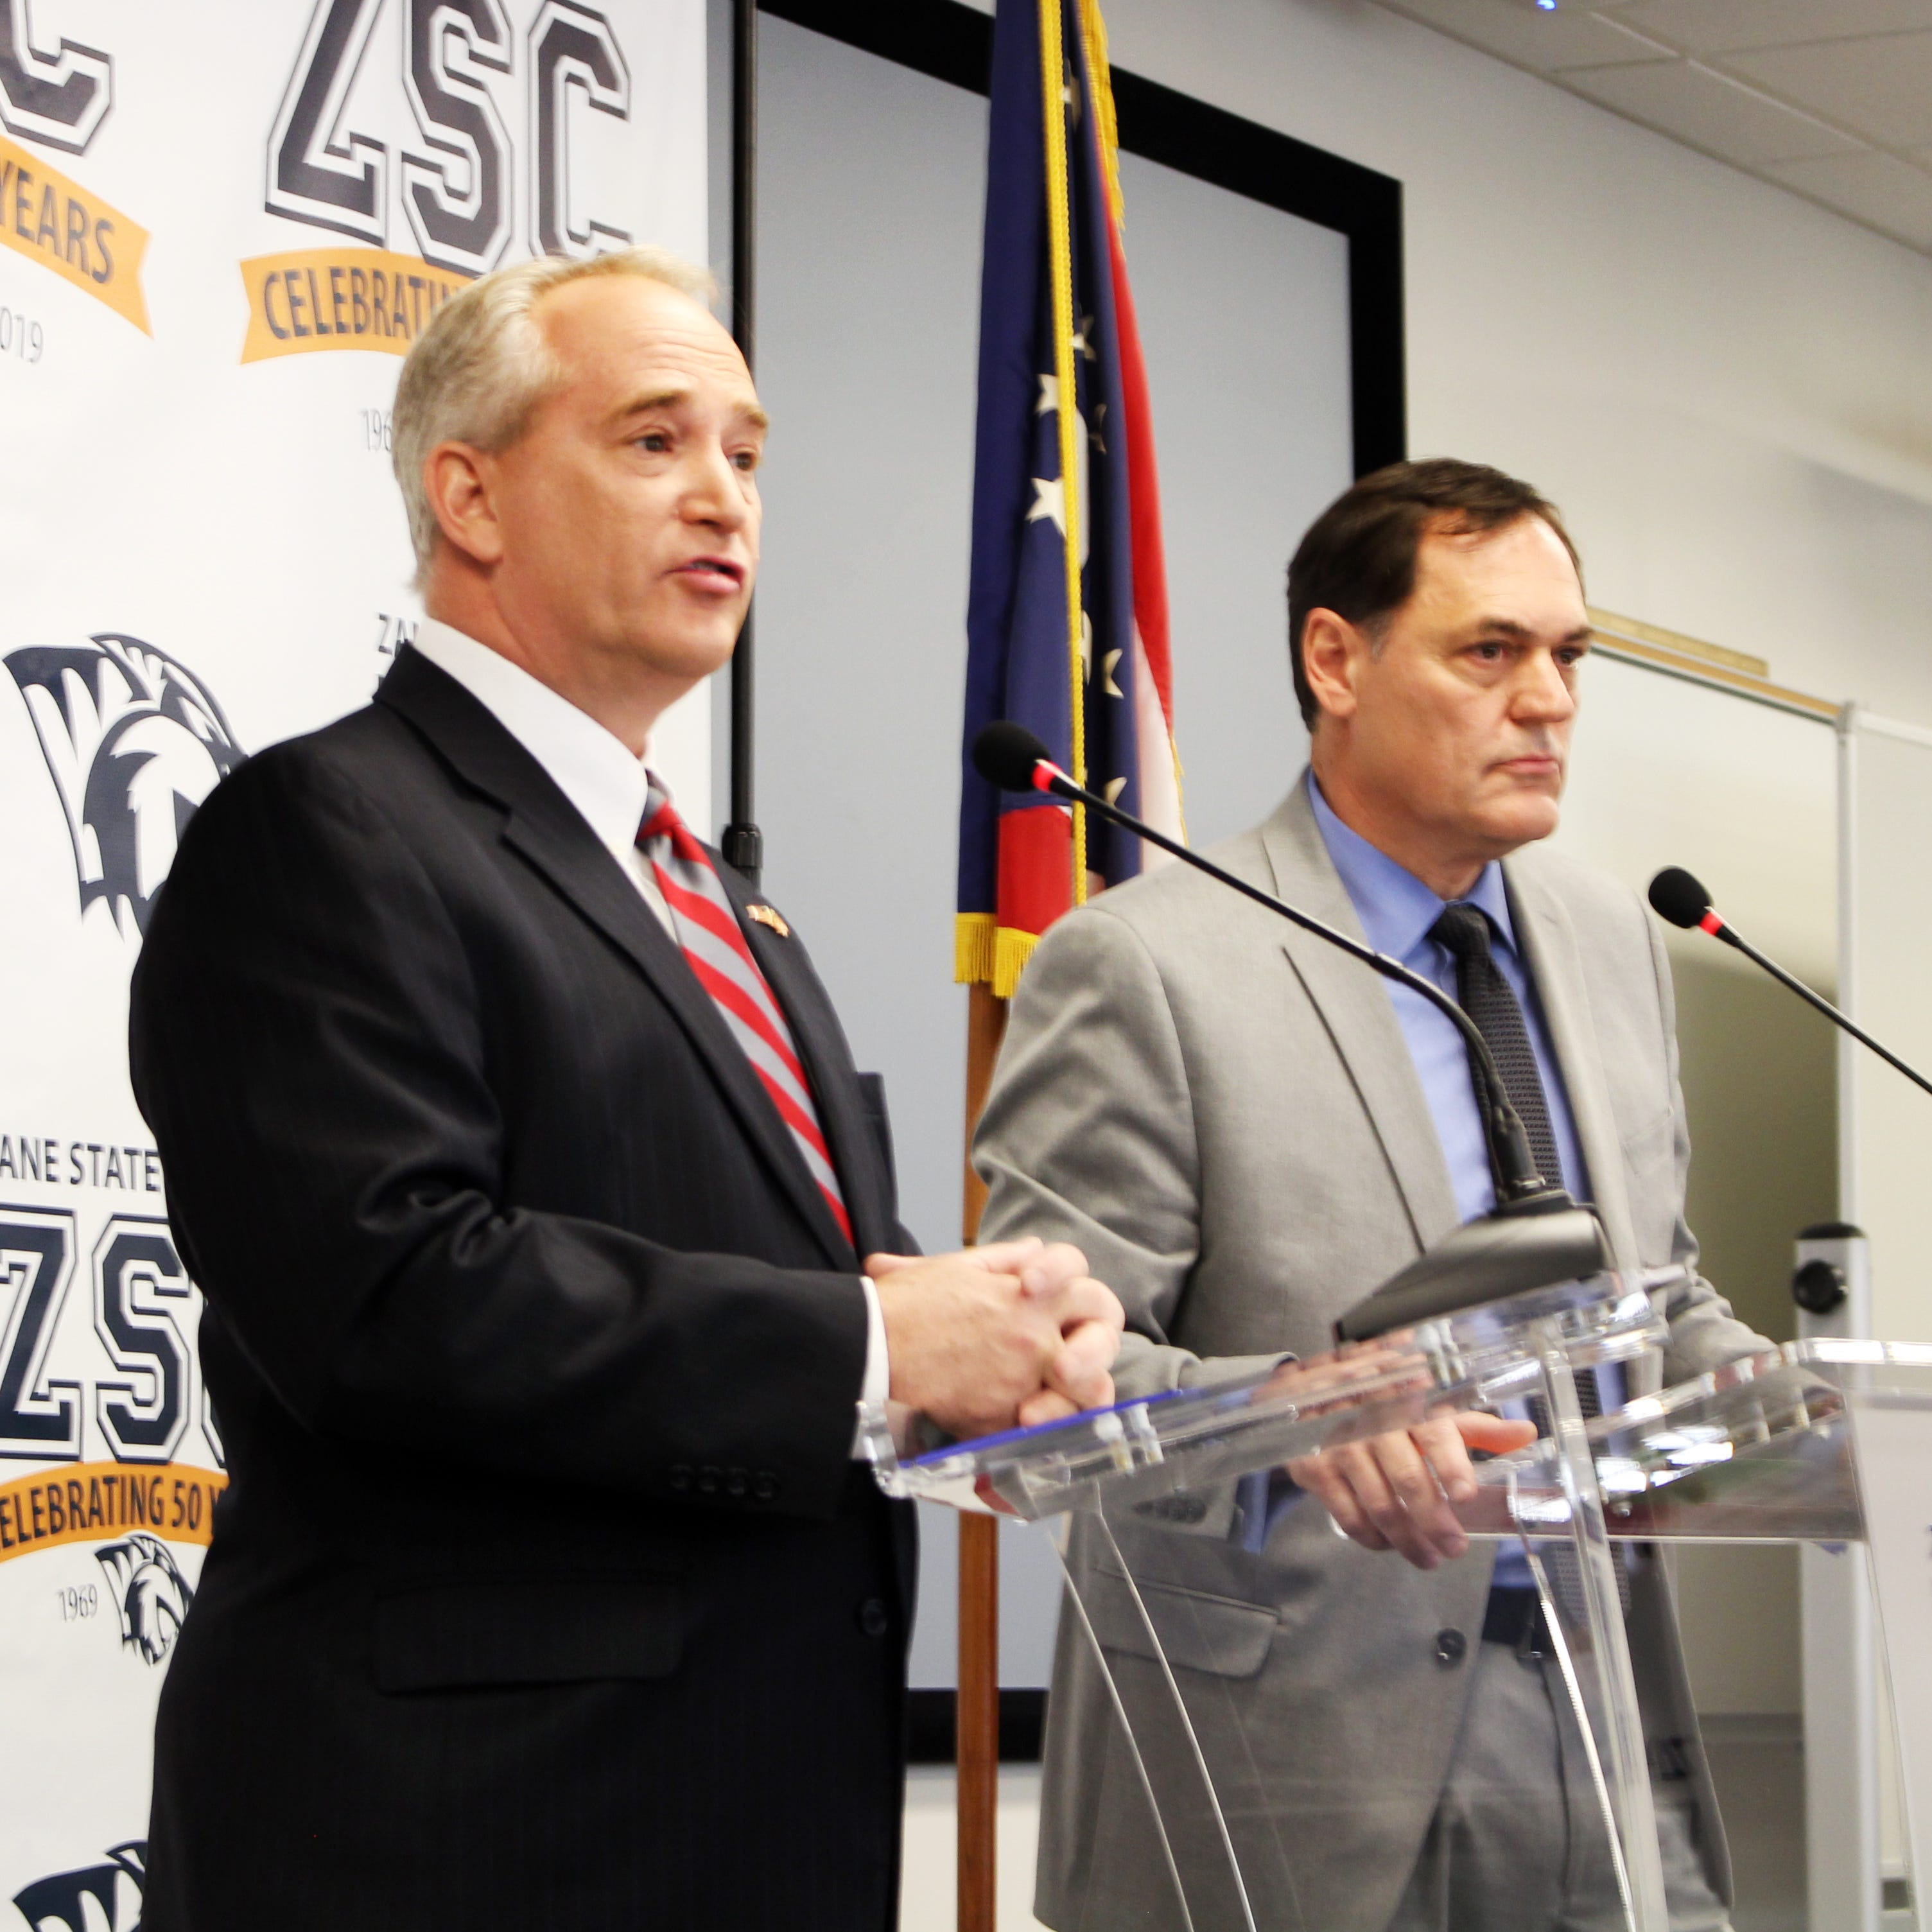 State auditor candidates Keith Faver, left, and Zack Space debate at Zane State College on Friday.